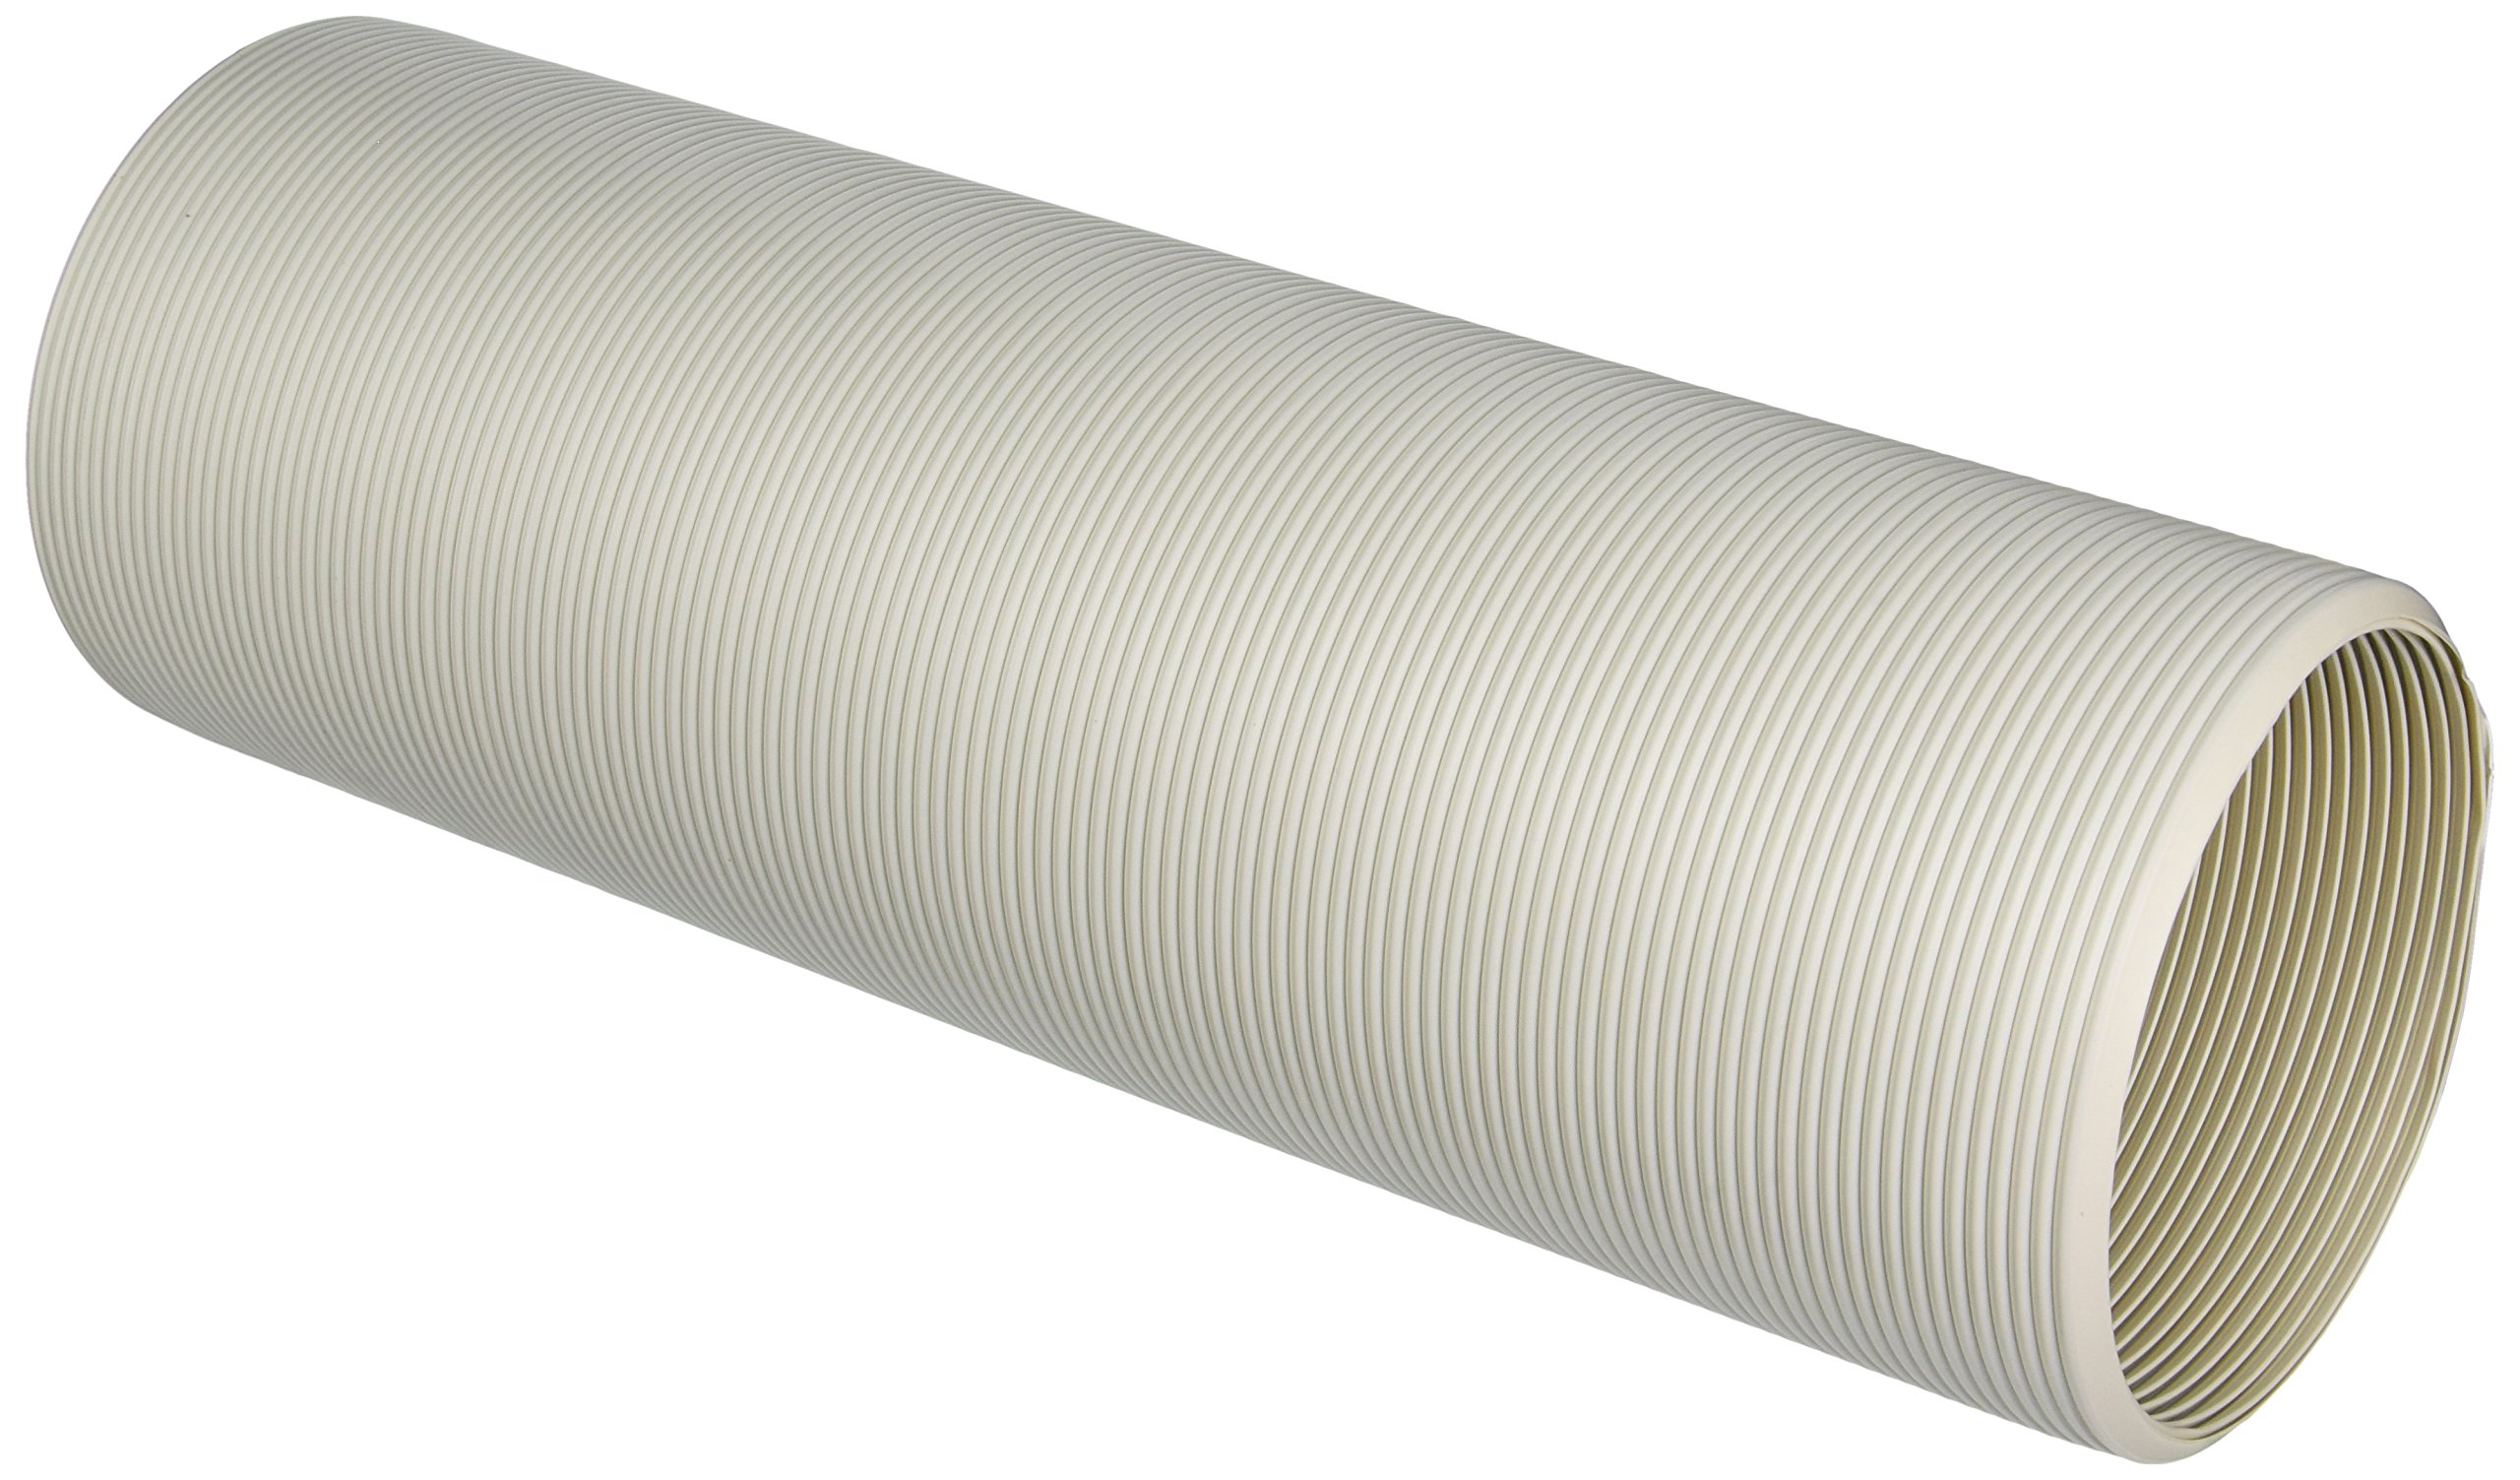 Haier AC-1830-07 Hose-Exhaust by Haier (Image #1)